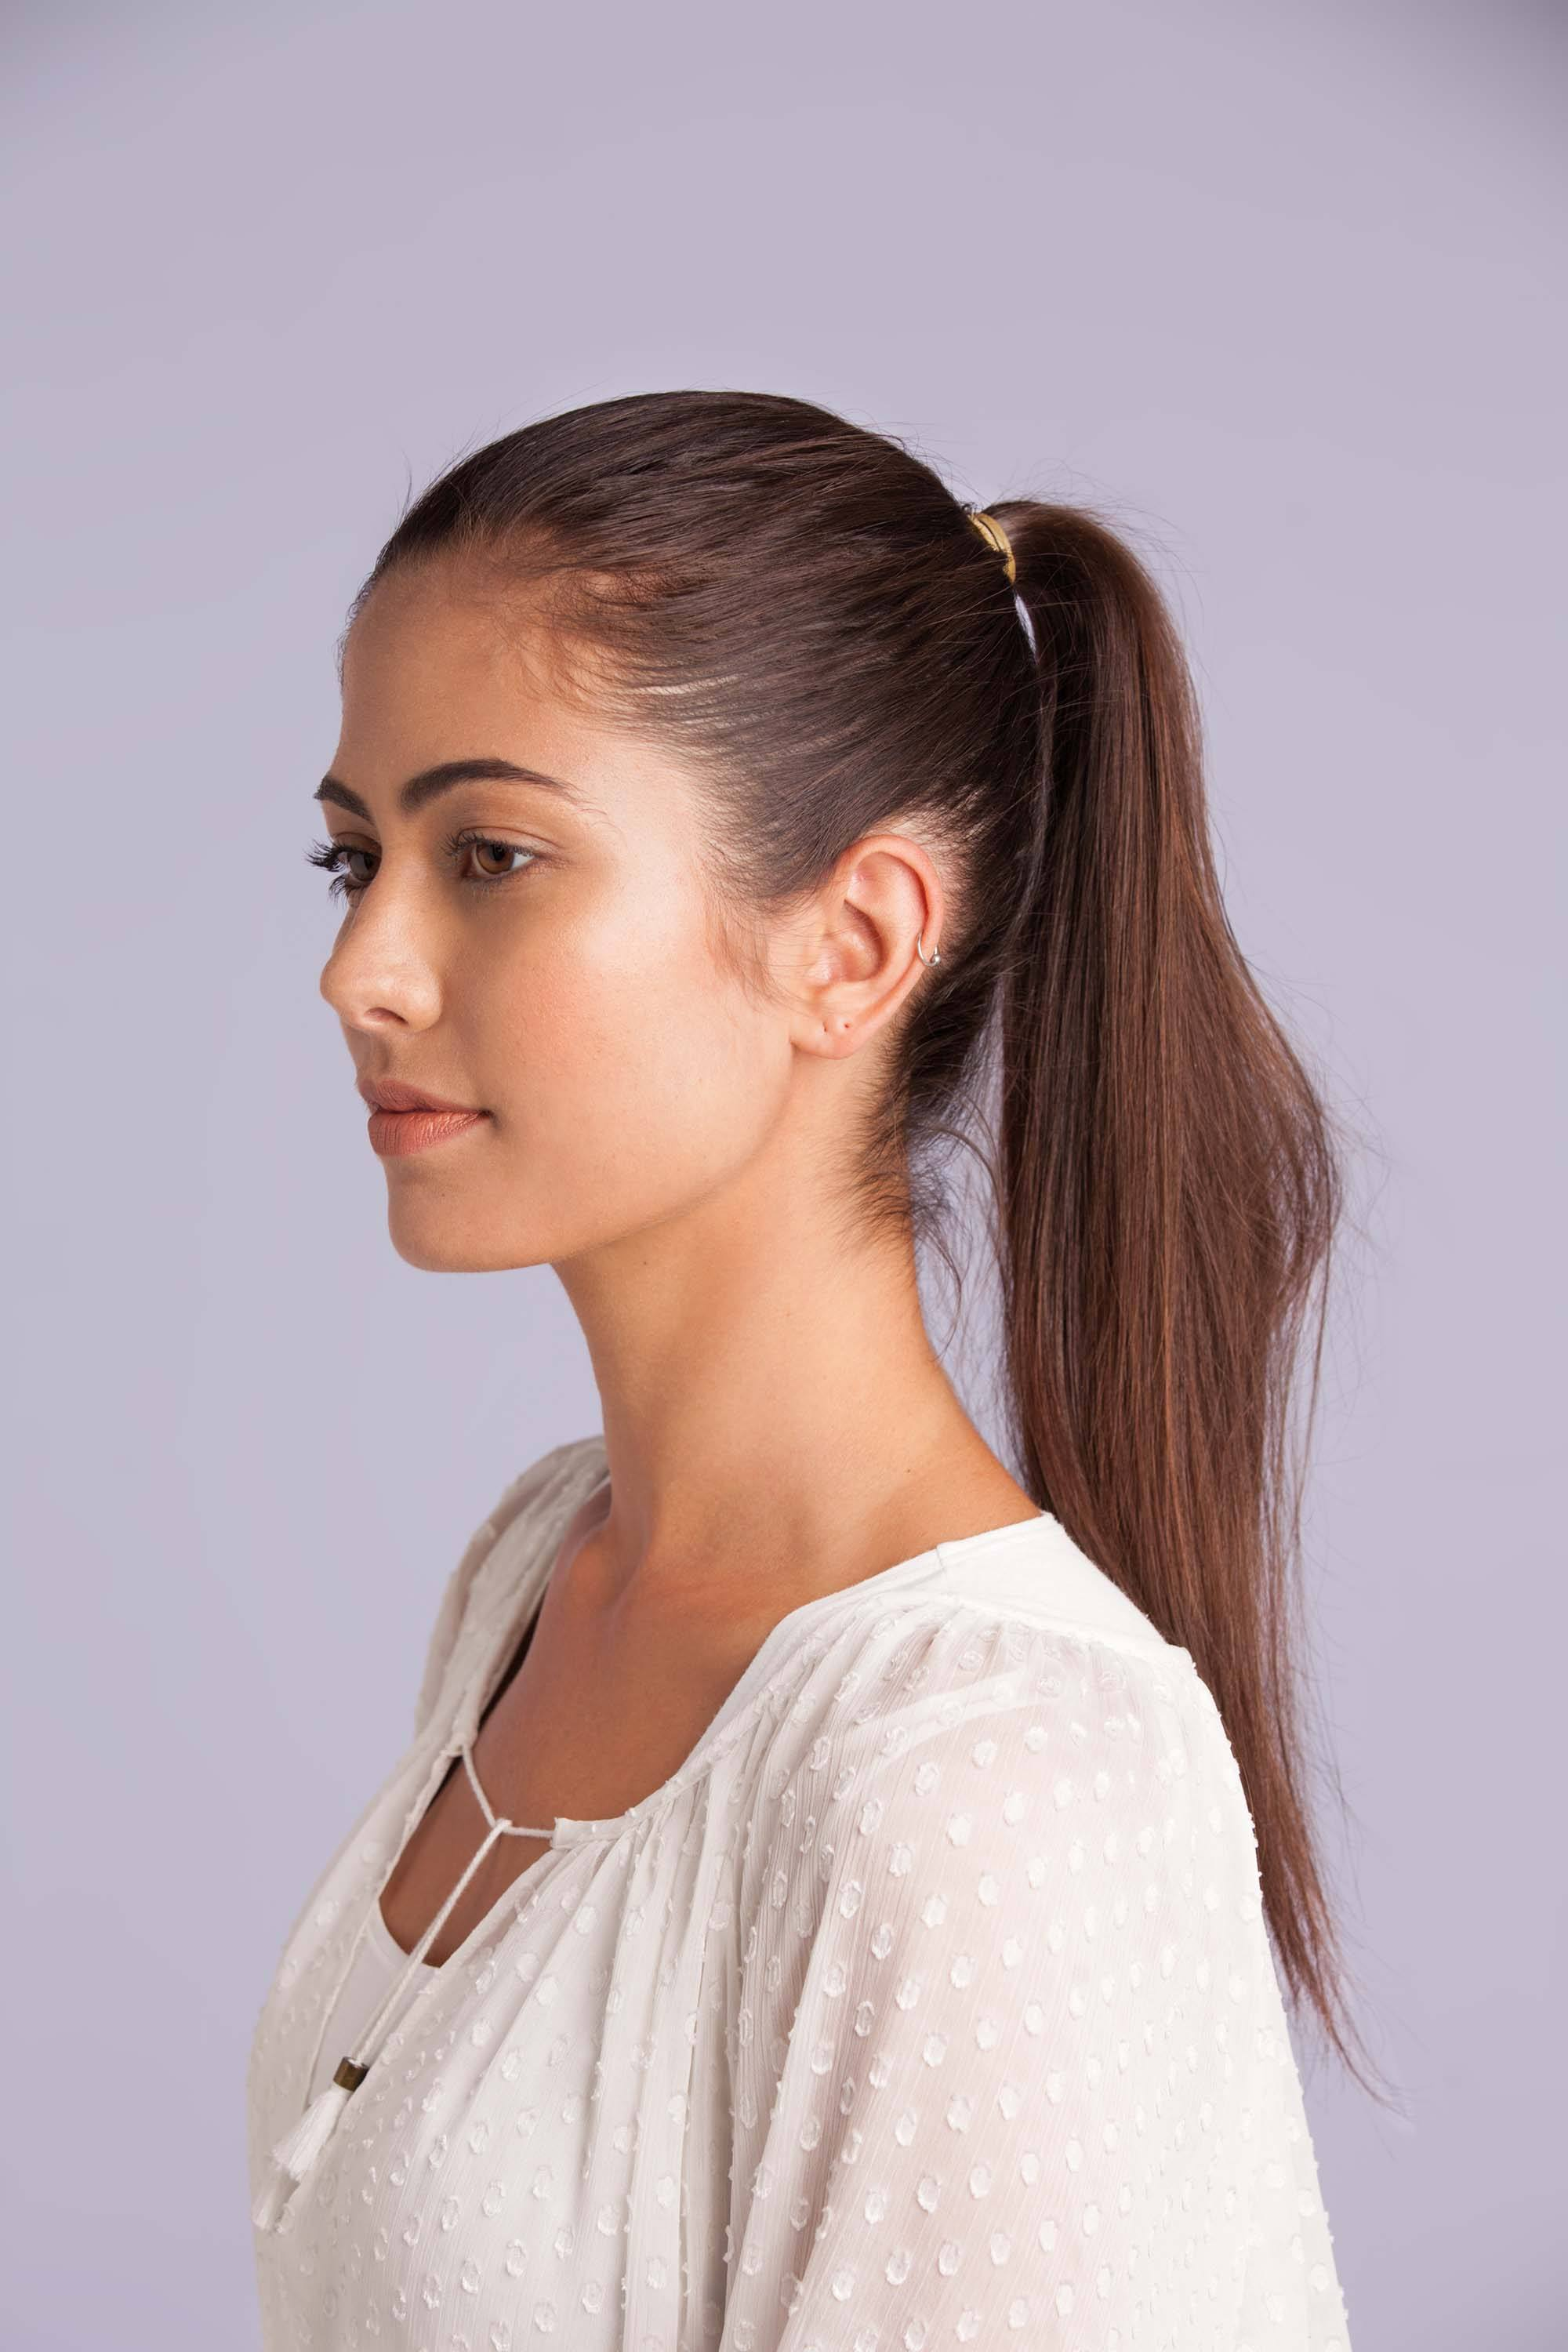 Ways to do your hair: high ponytail